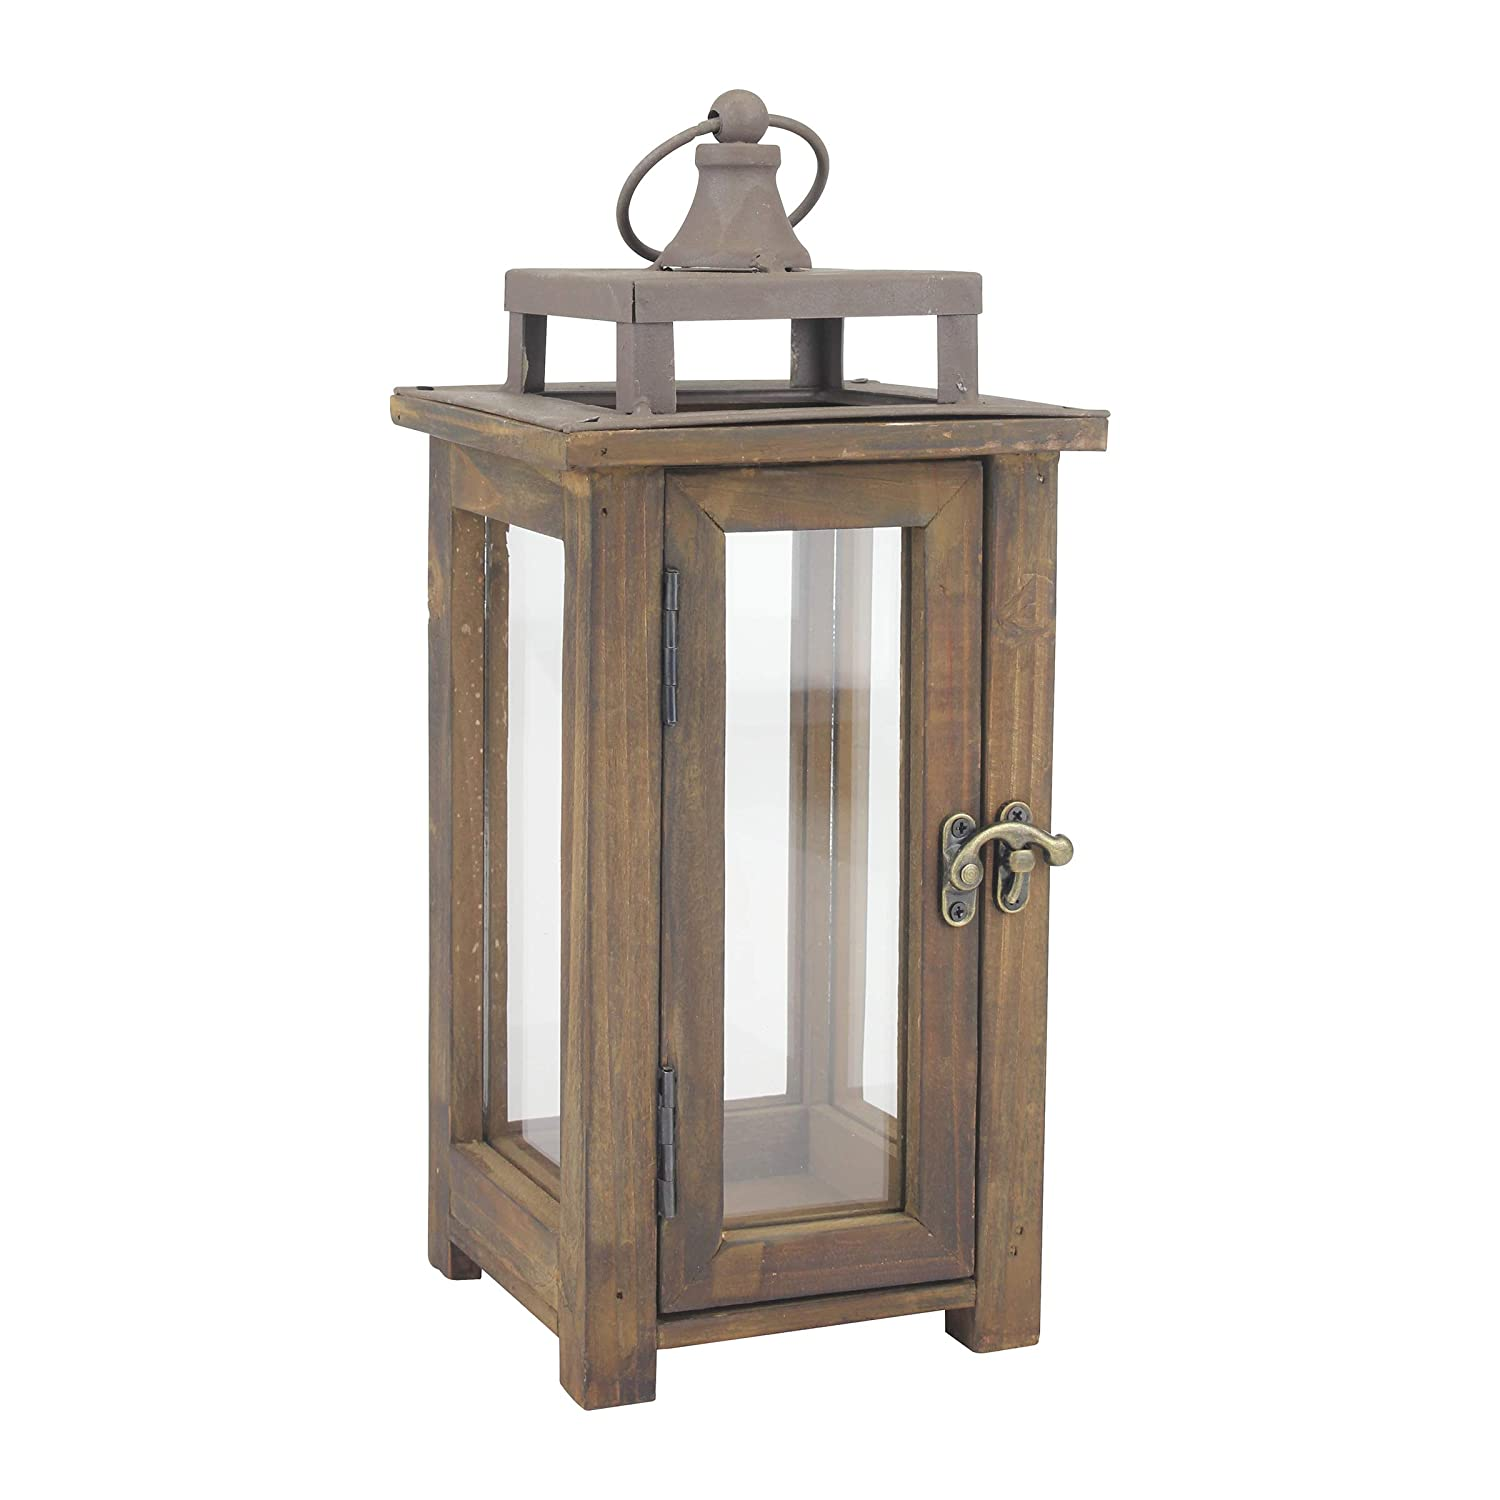 solid wood  Wooden Candle Lantern, Use As Decoration for Birthday Parties, a Rustic Centerpiece, or Create a Relaxing Spa Setting, for Indoor or Outdoor Use, Small